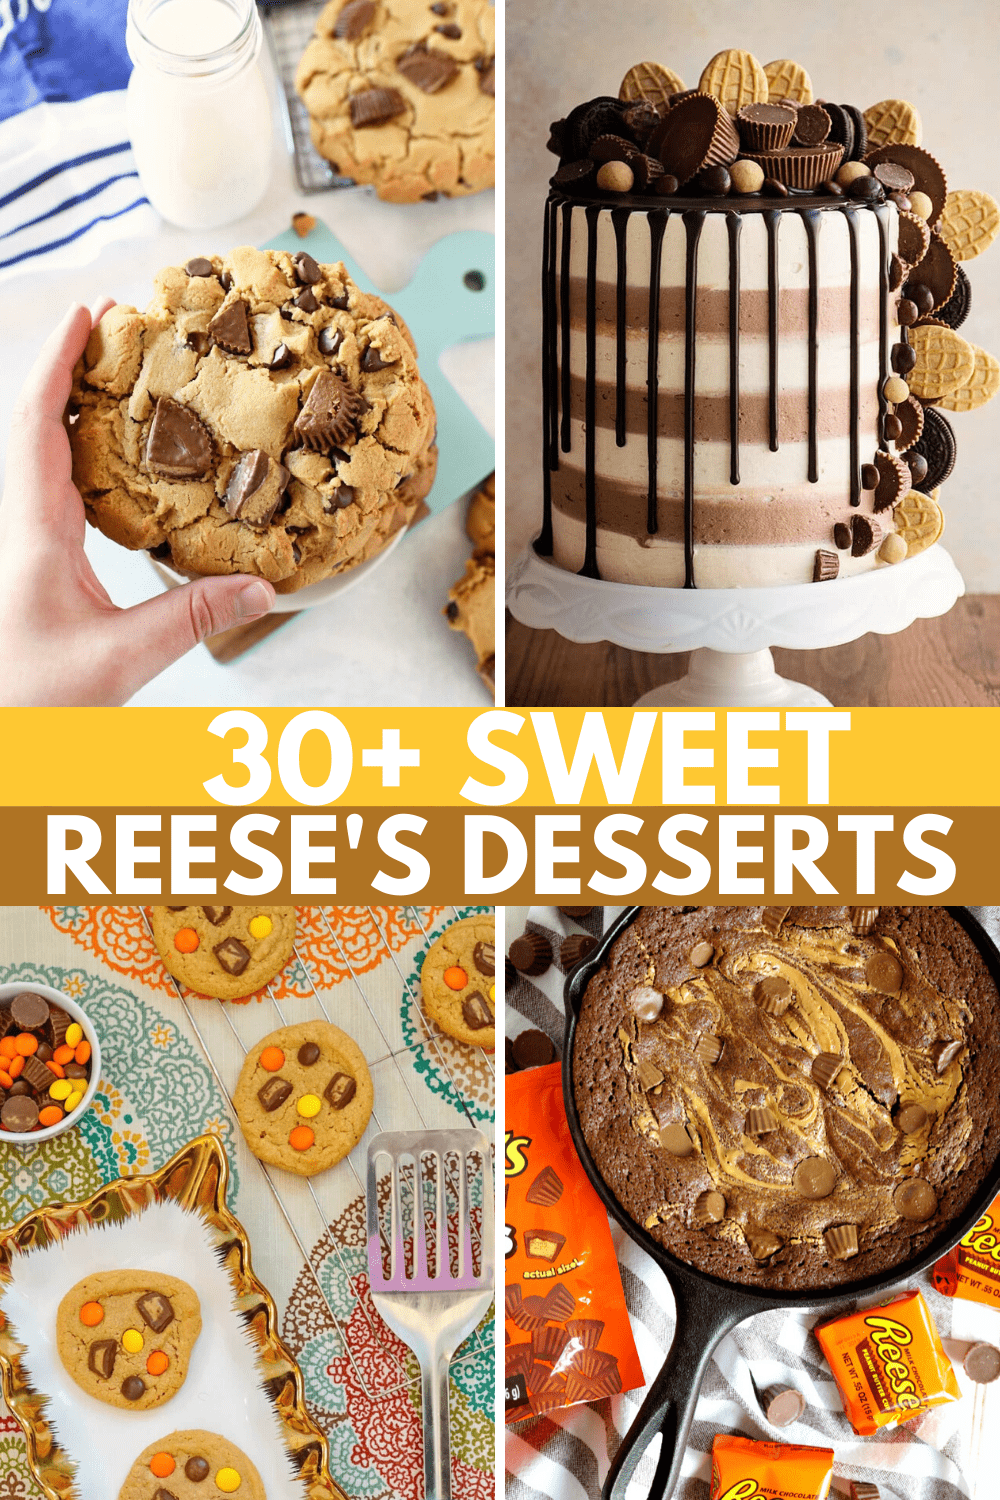 Reese's Recipes: 30+ Recipes With Reese's Peanut Butter Cups